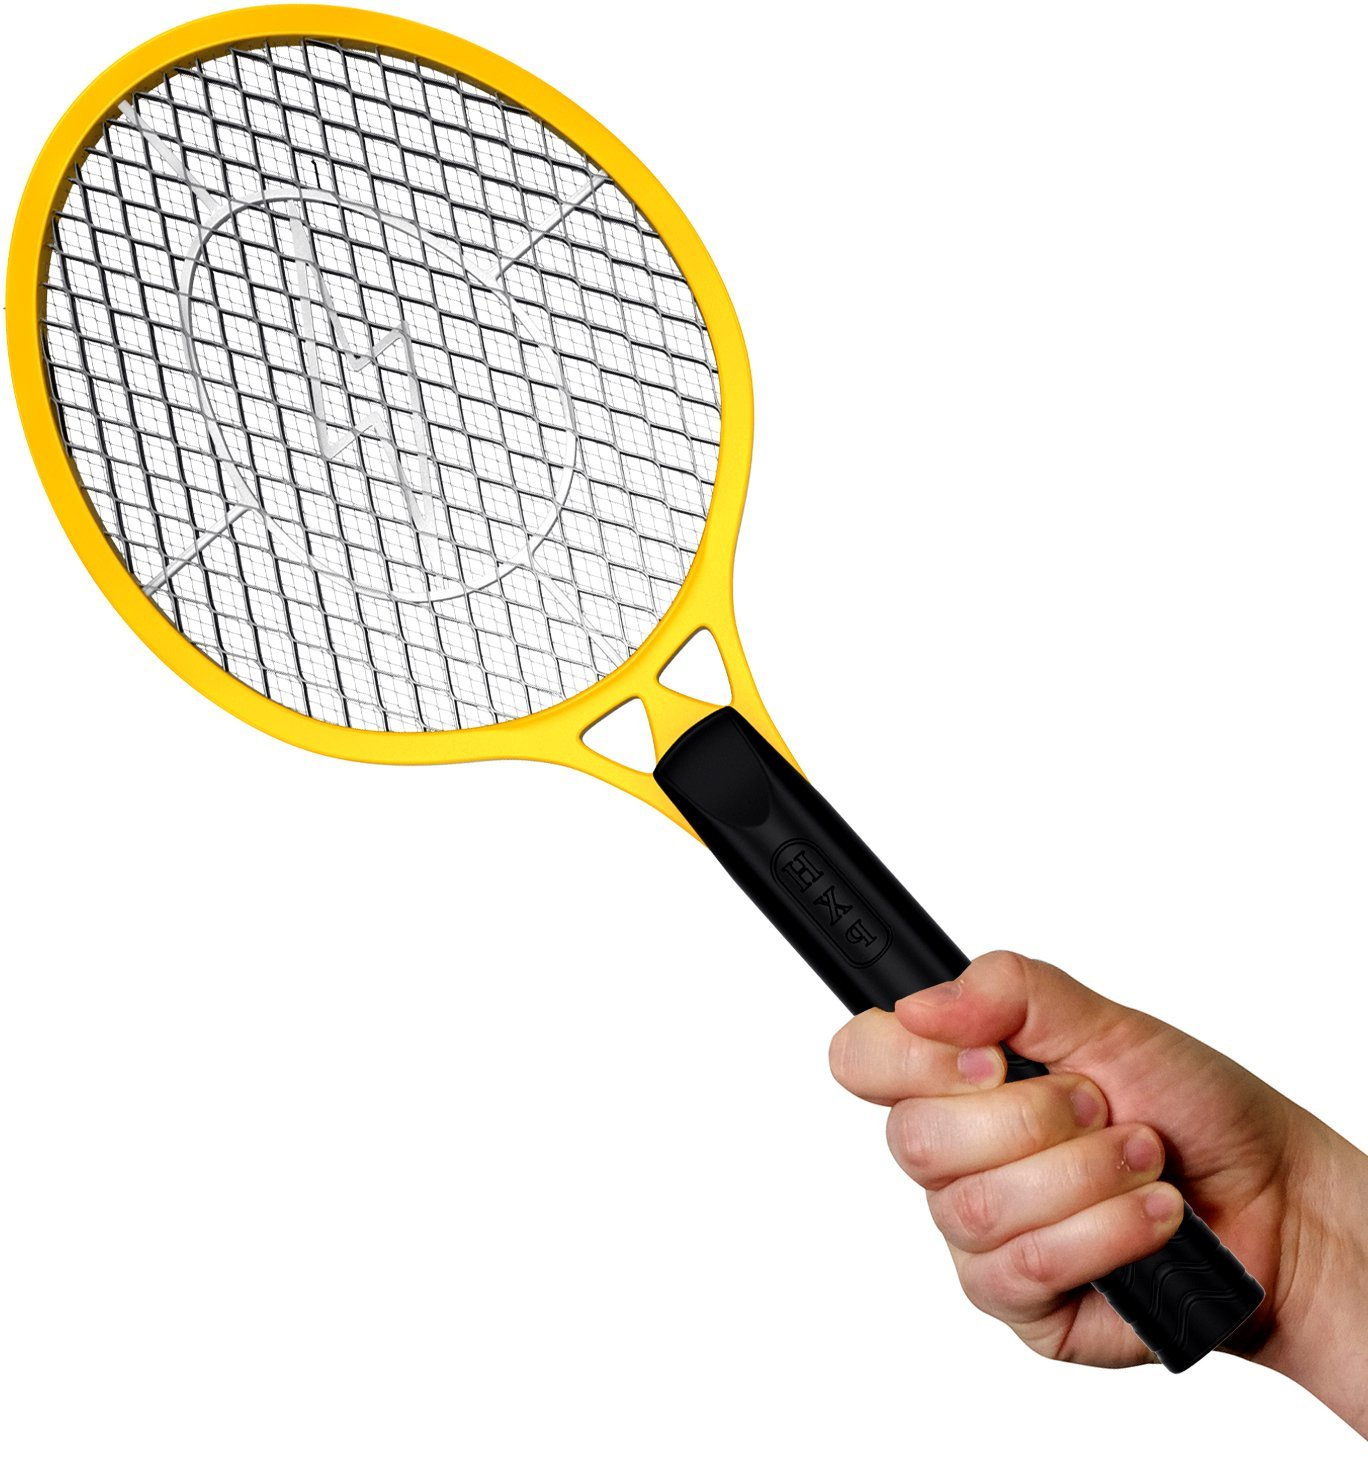 BugzOff Electric Fly Swatter Racket - Best Zapper for Flies - Swat insect repellent, Wasp, Bug & mosquito repellent with Hand - Indoor and Outdoor Trap and Zap Pest Control Killer (Yellow) Tennis-Yellow